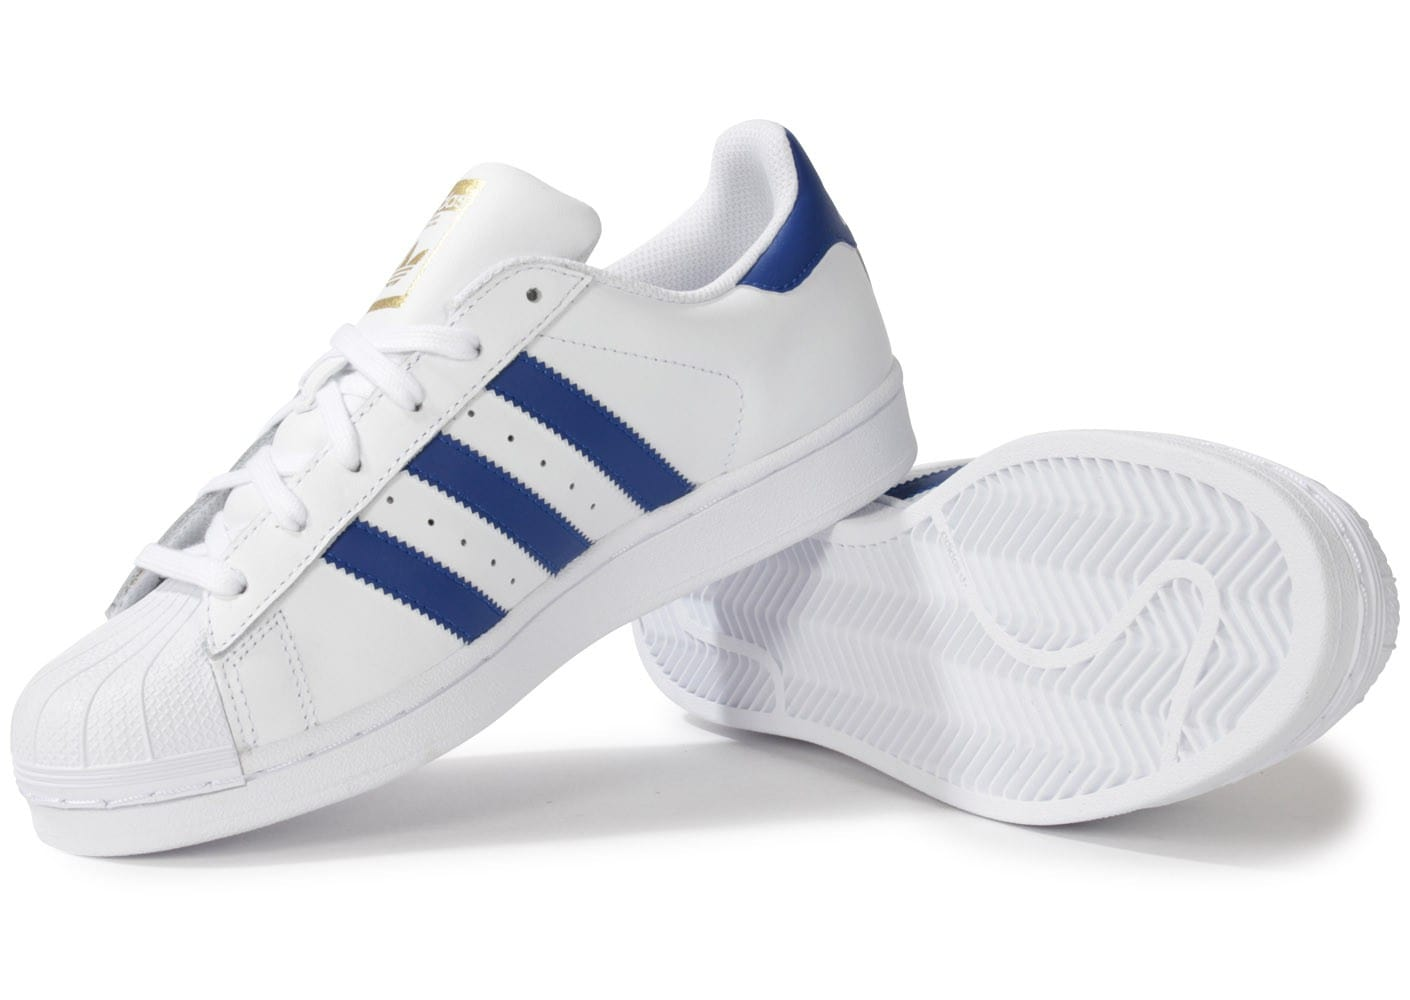 adidas superstar foundation blanc bleu chaussures homme chausport. Black Bedroom Furniture Sets. Home Design Ideas